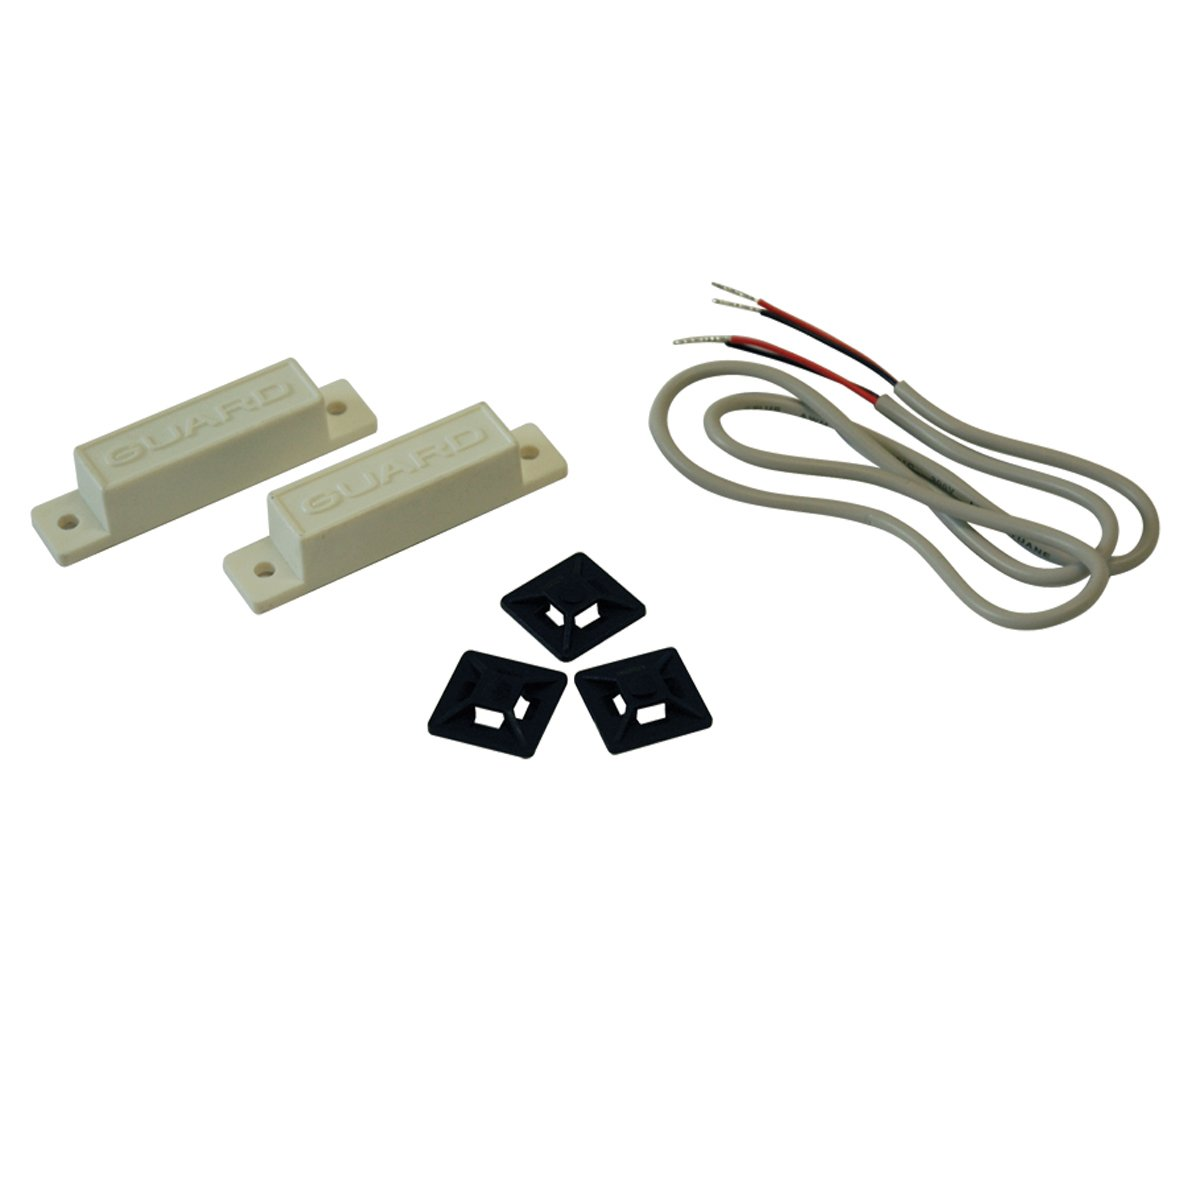 An image of Tripp lite smartrack magnetic door switch kit for front and rear doors; requires...